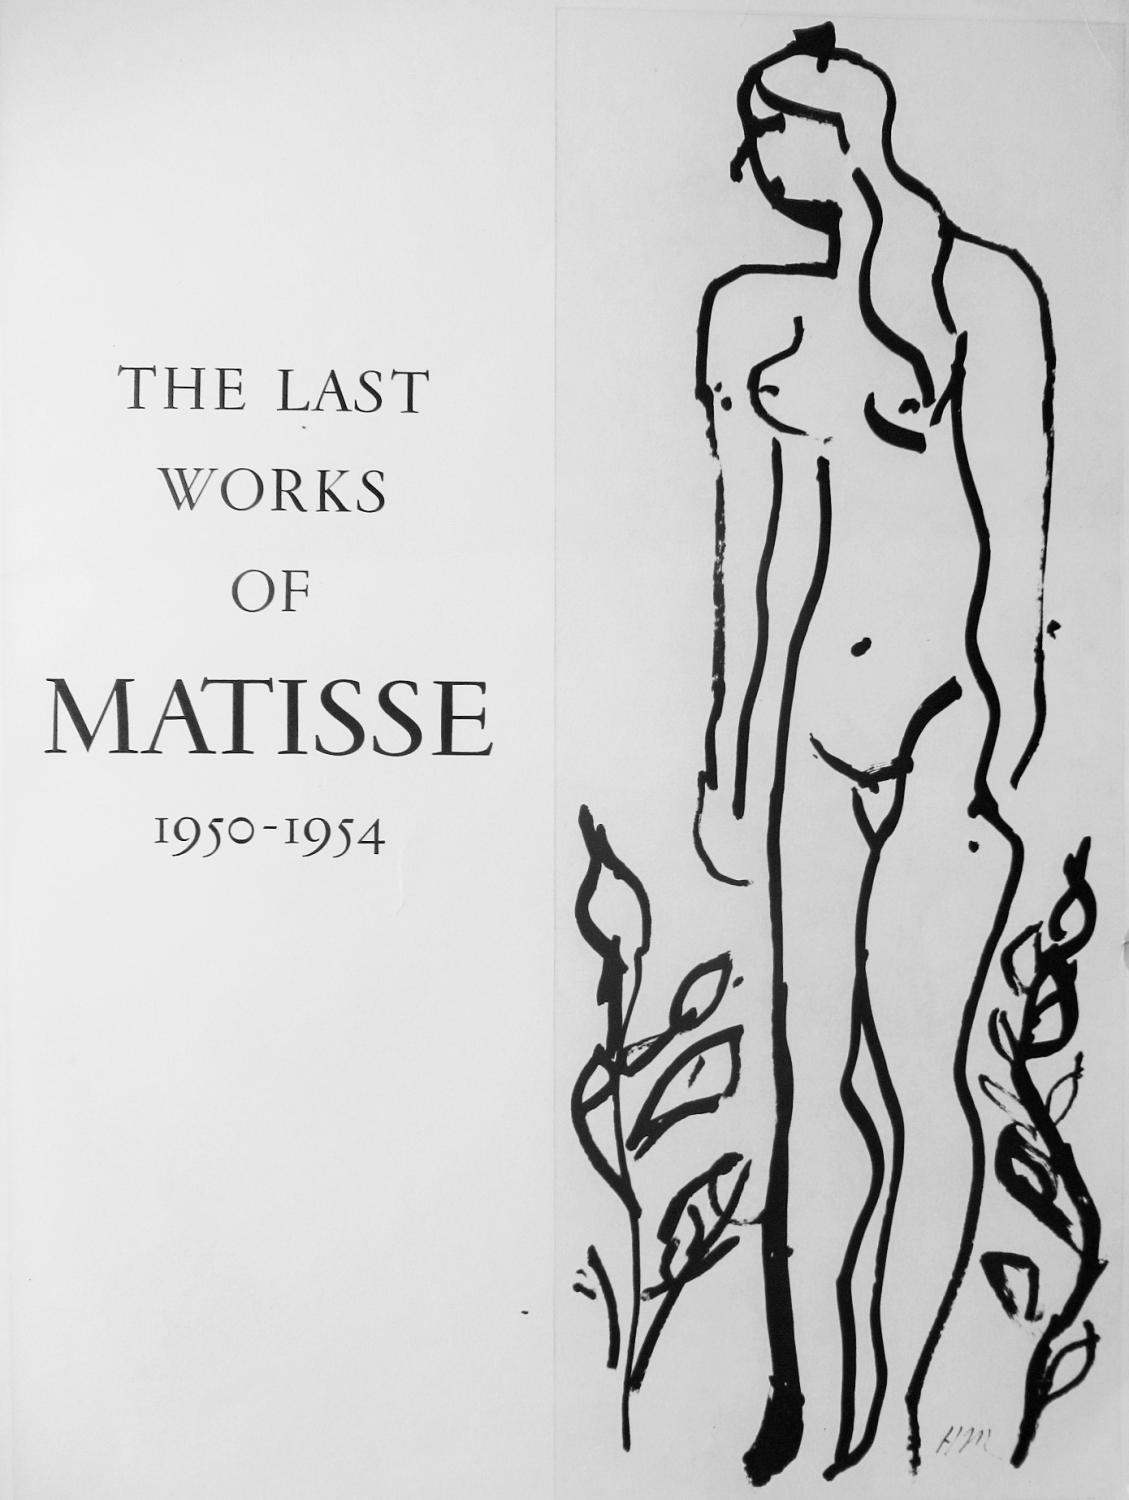 LAST_WORKS_-_LITHOGRAPH_HENRI_MATISSE_[Very_Good]